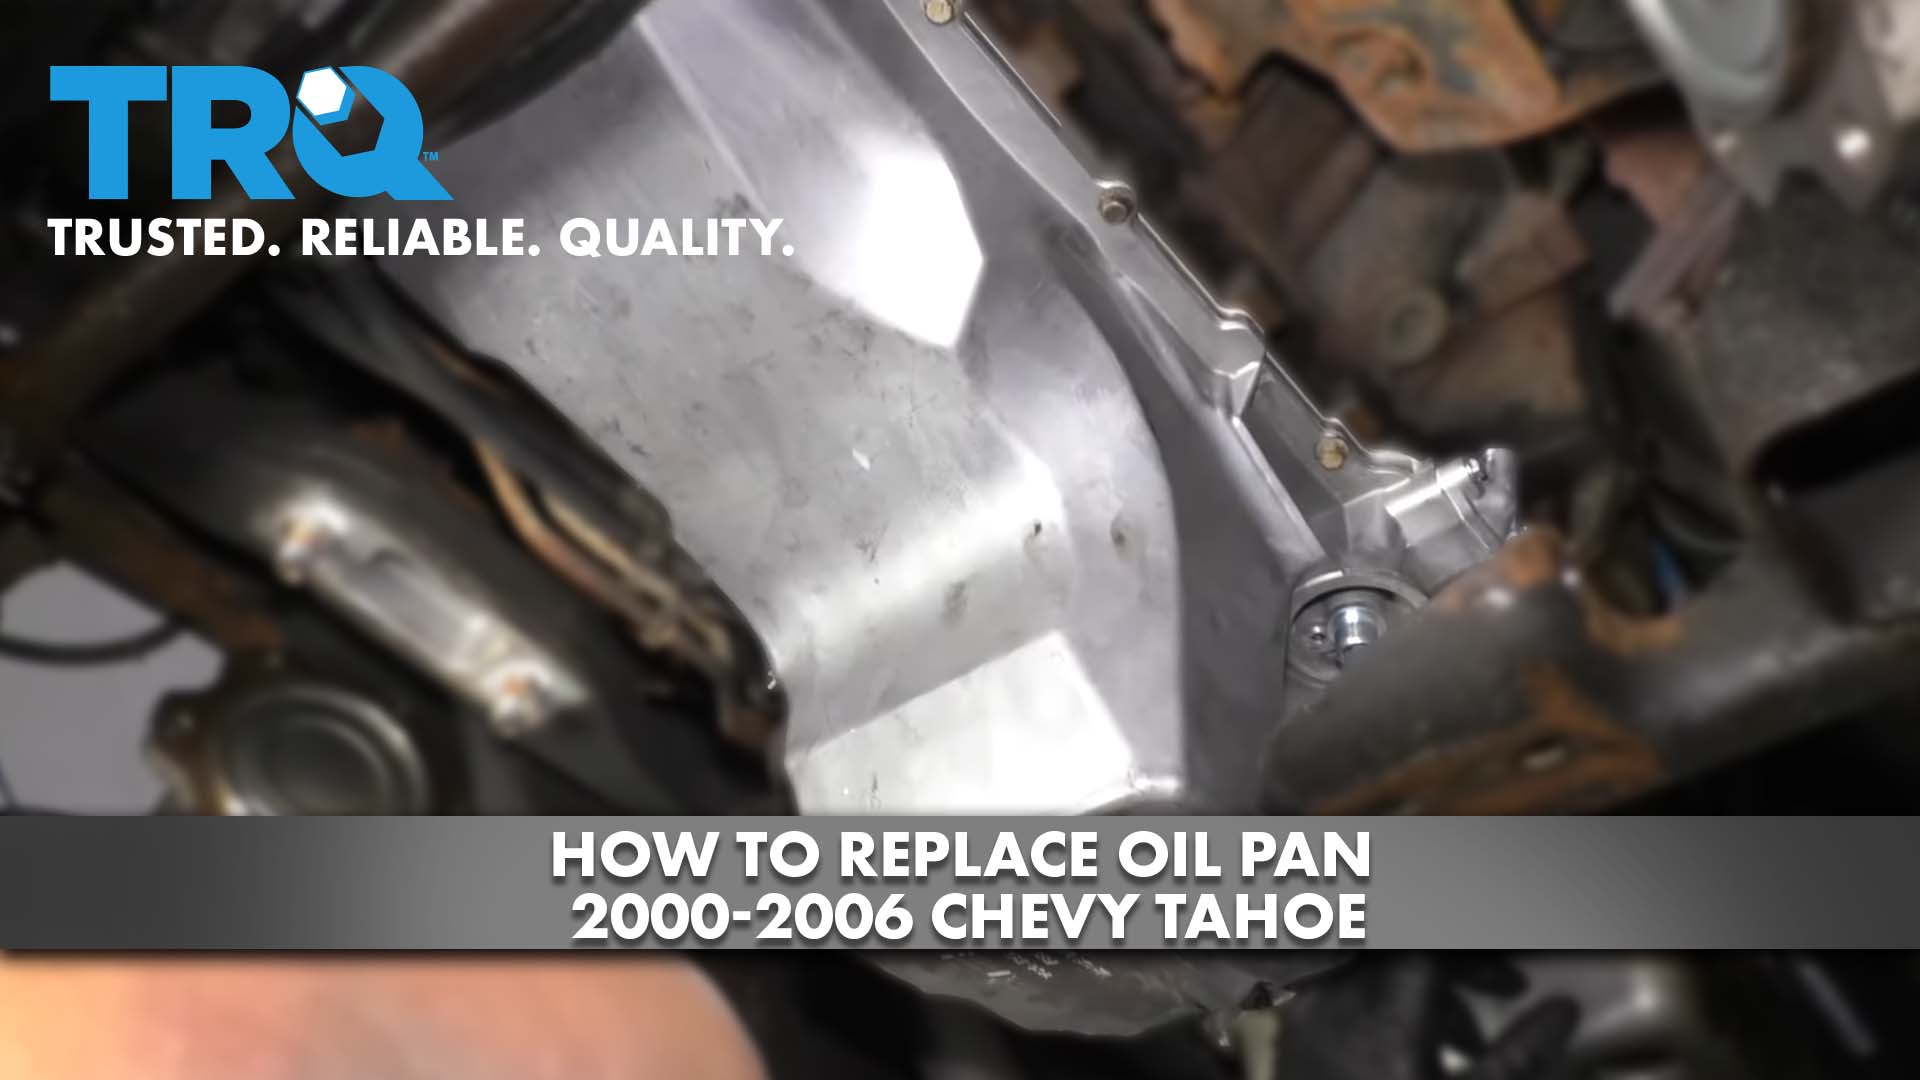 How to Replace Oil Pan 2000-06 Chevy Tahoe